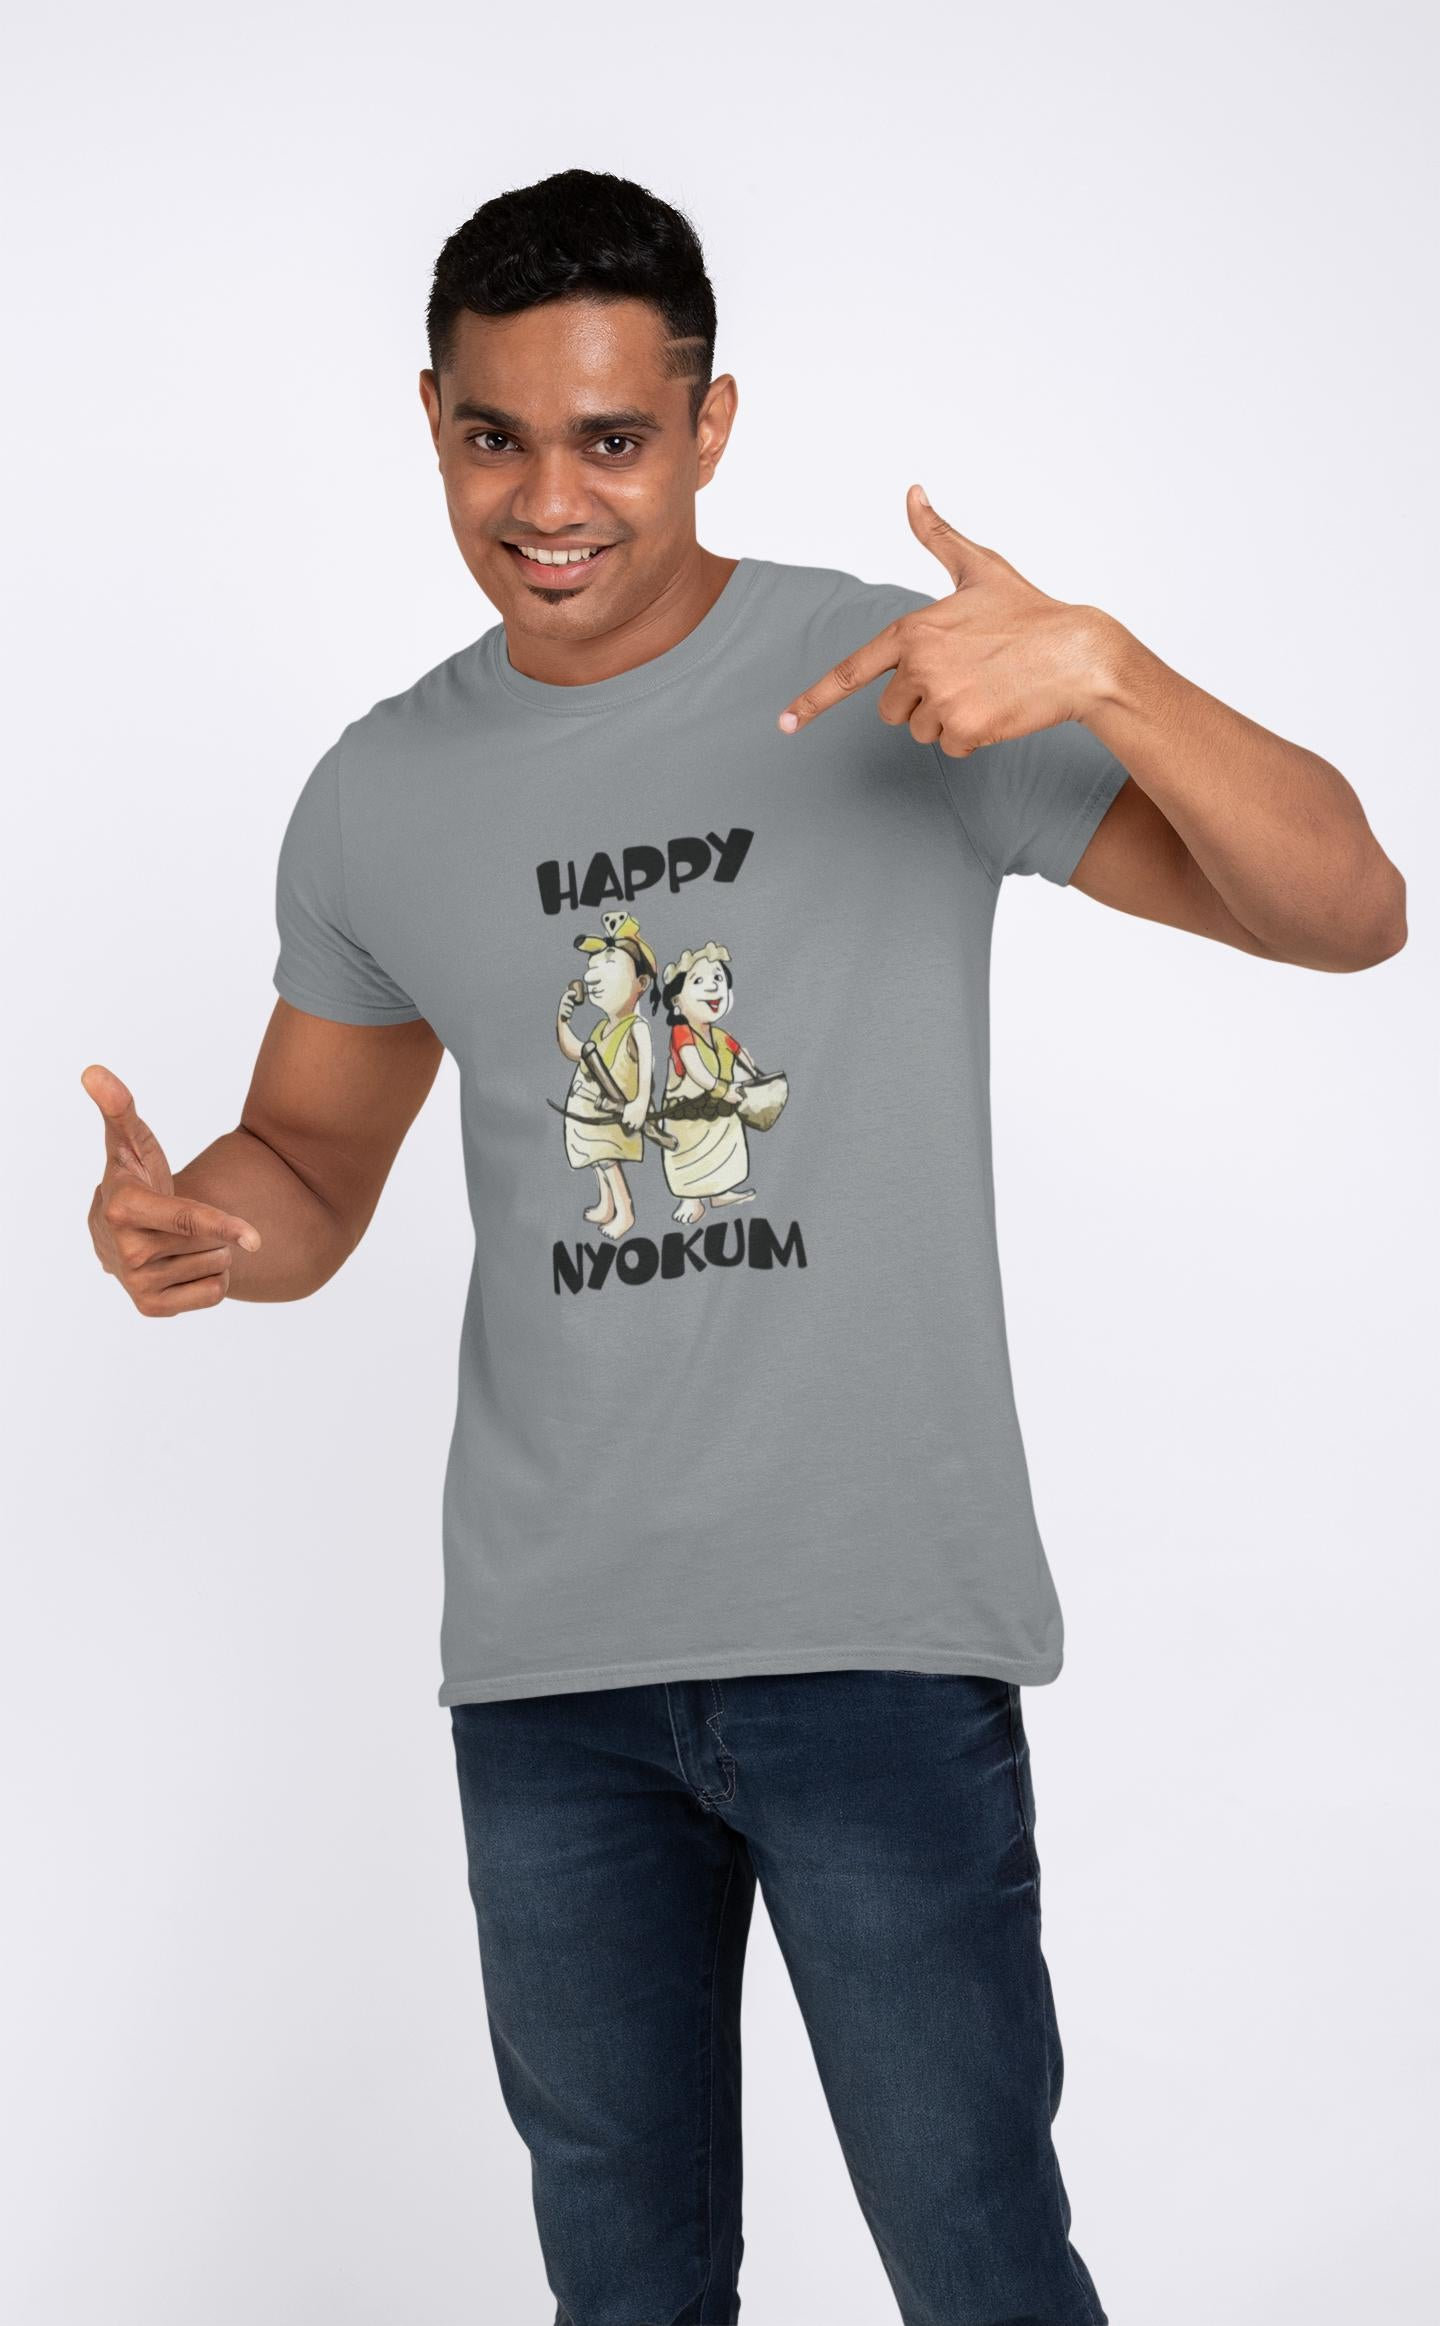 Happy nyoku Printed T-shirt ItaMoto Fashions